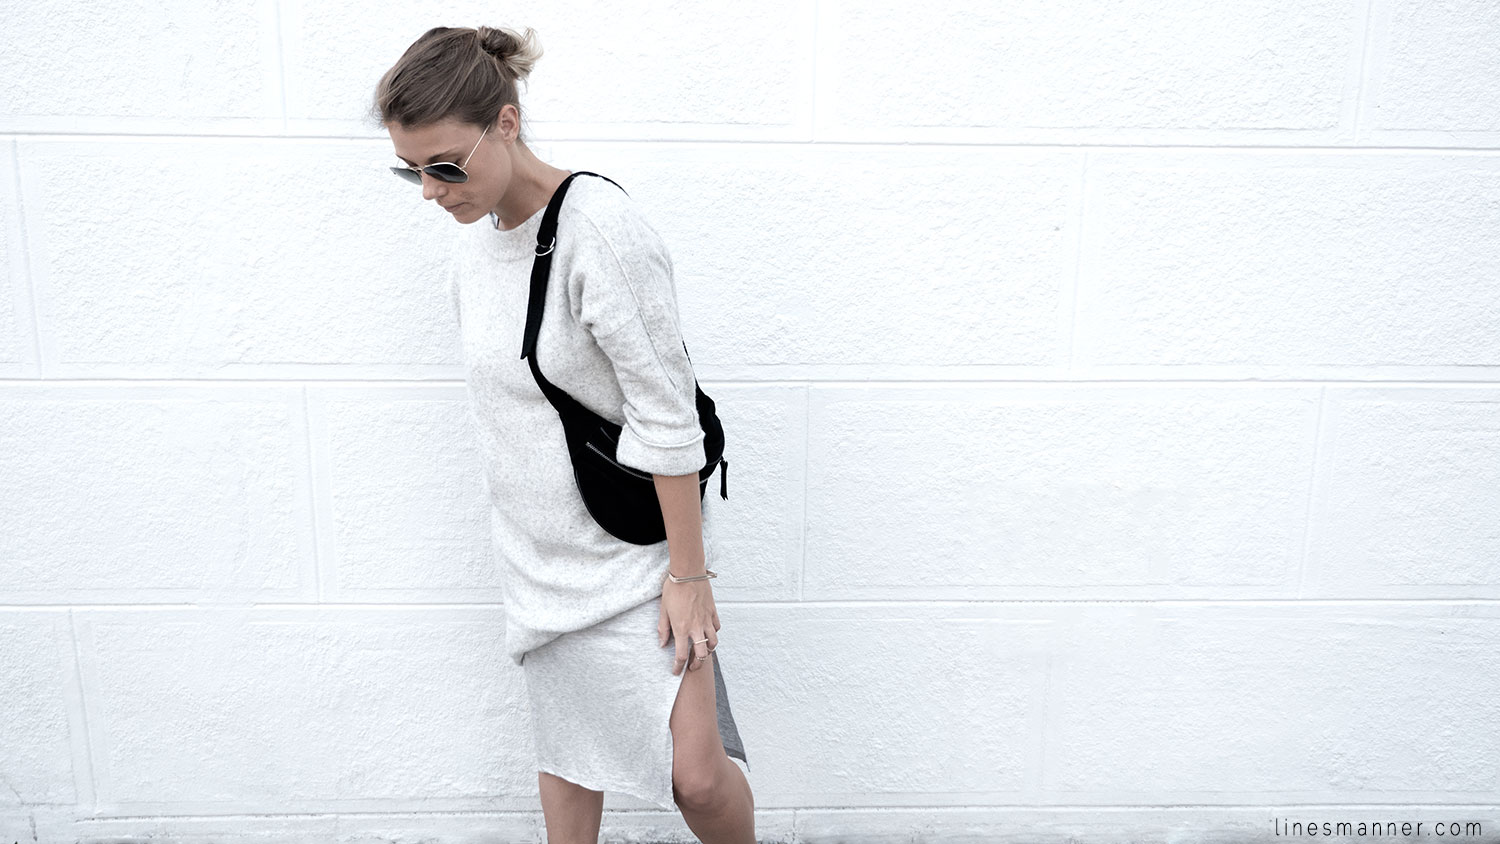 Lines-Manner-Fashion-Collaboration-The_Demeler-Monochrome-Grey_on_Grey-Fresh-Brightly-Outfit-Simplicity-Details-Trend-Minimalist-Flowy-Layering-Sleeves-Sweater_Dress-16